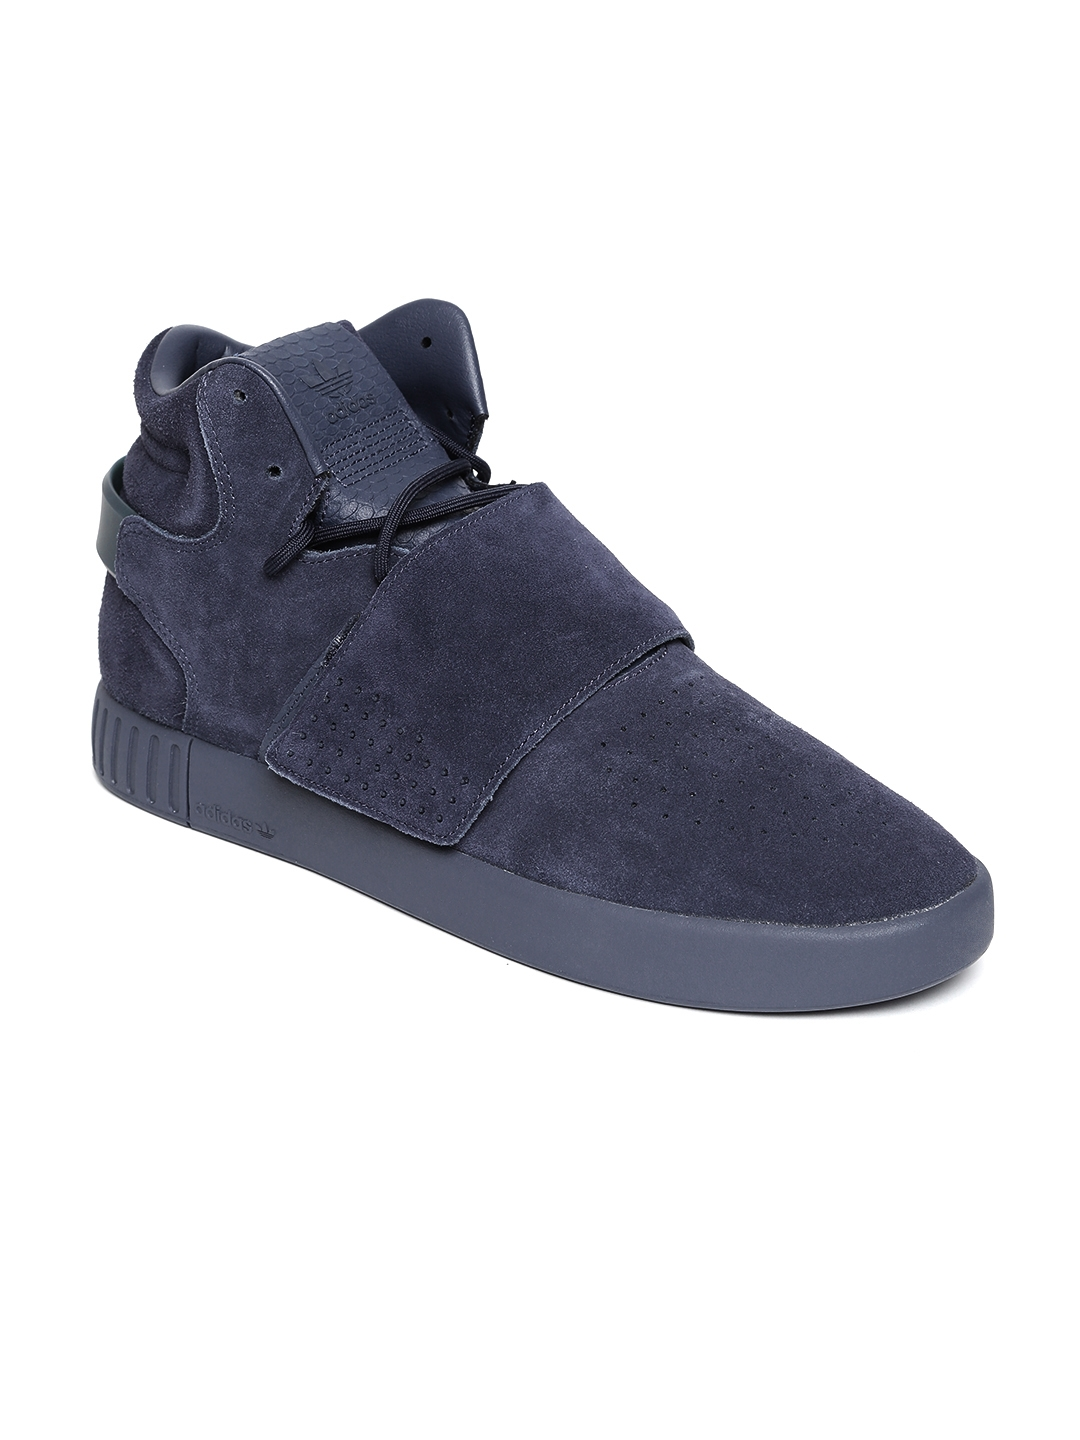 new arrival 8c770 729ef ADIDAS Originals Men Purple Tubular Invader Strap Mid-Top Leather Sneakers